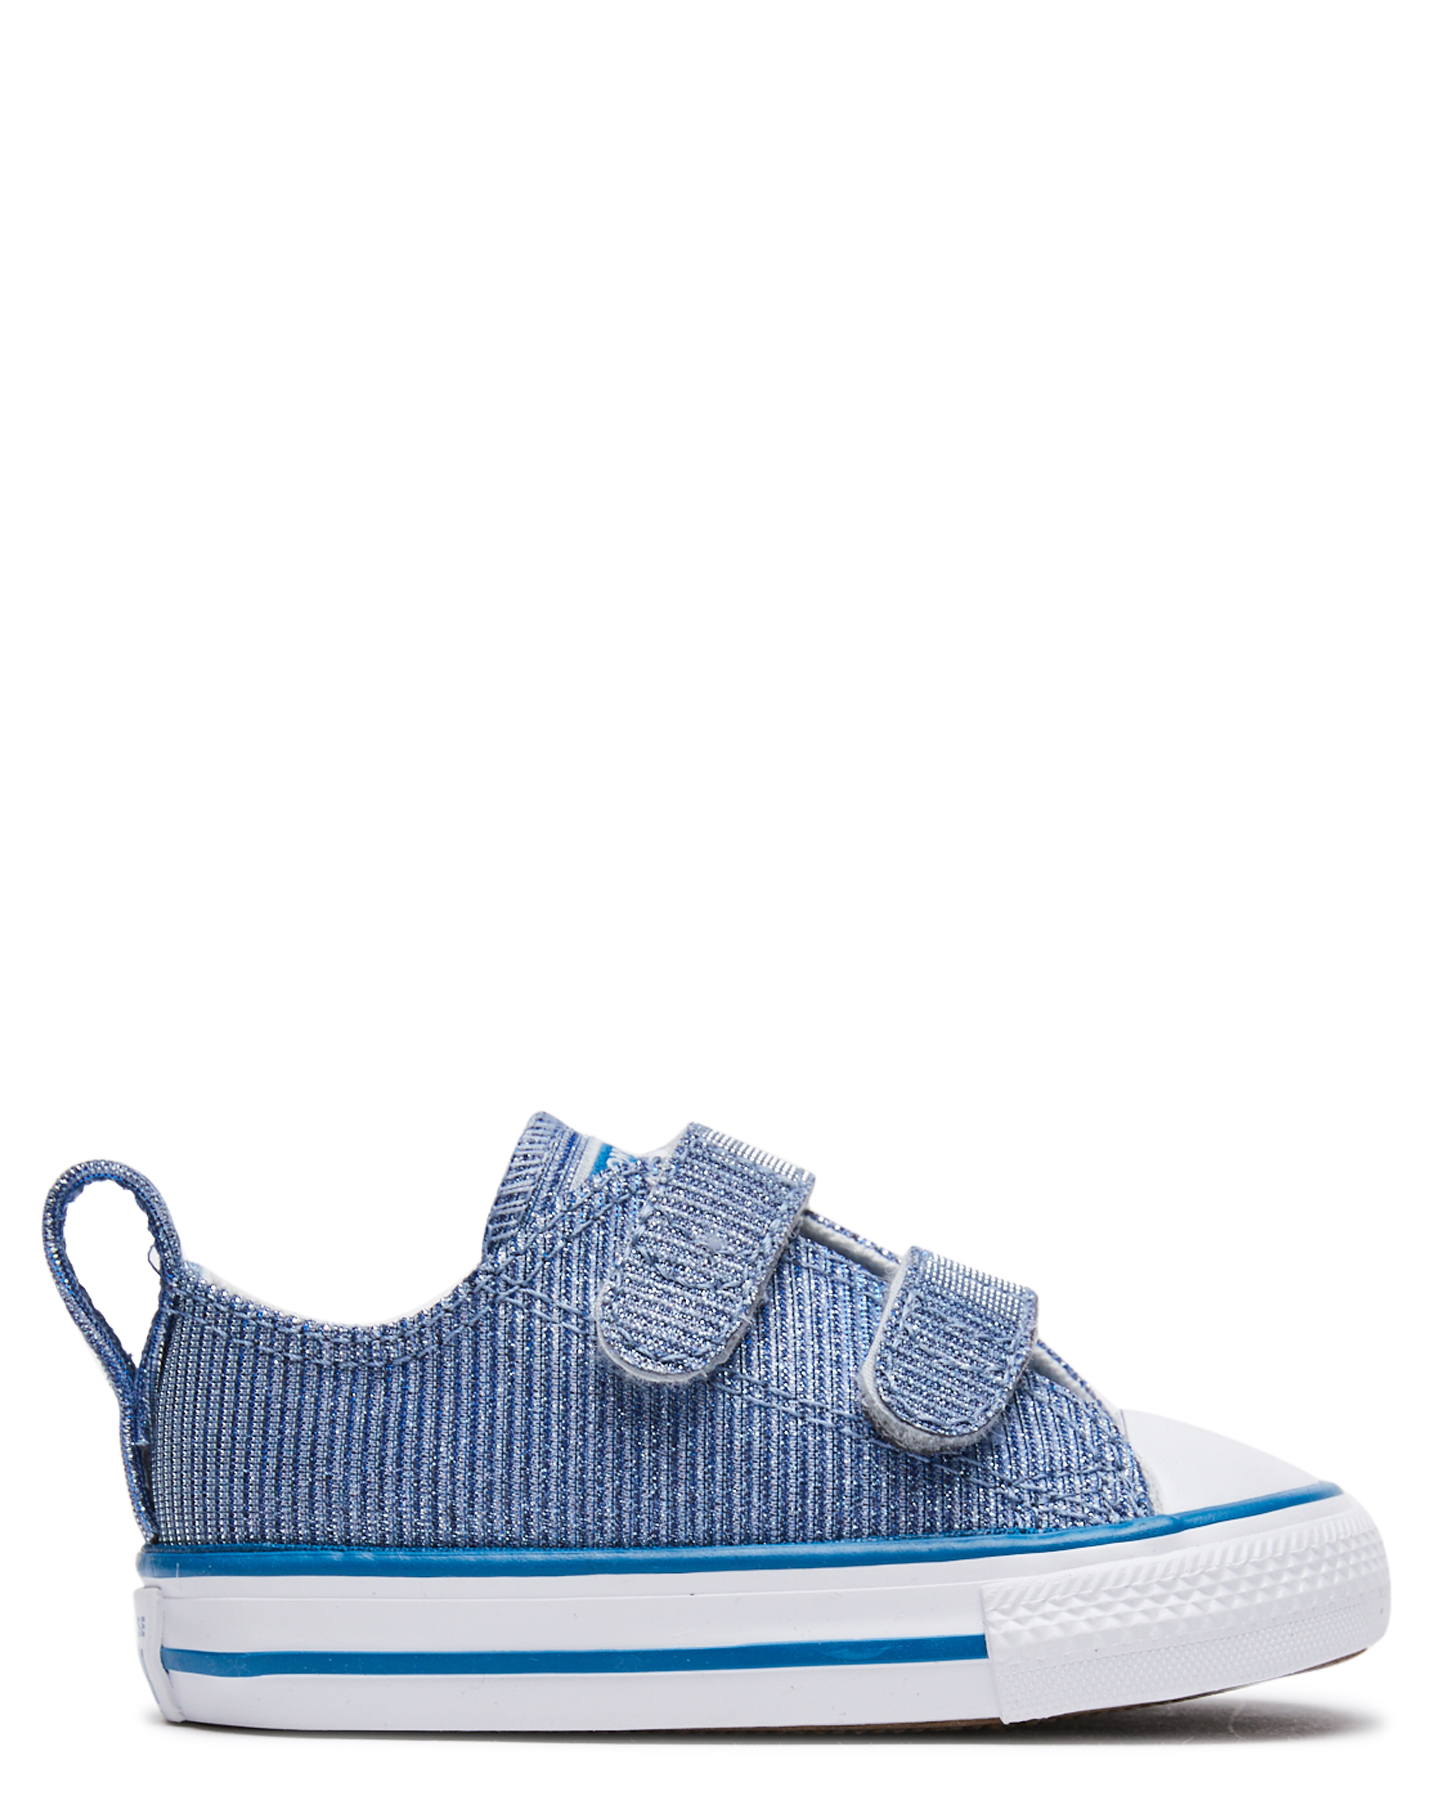 Converse Tots Girls Chuck Taylor All Star 2V Glitter Shoe - Toddlers Ice Blue